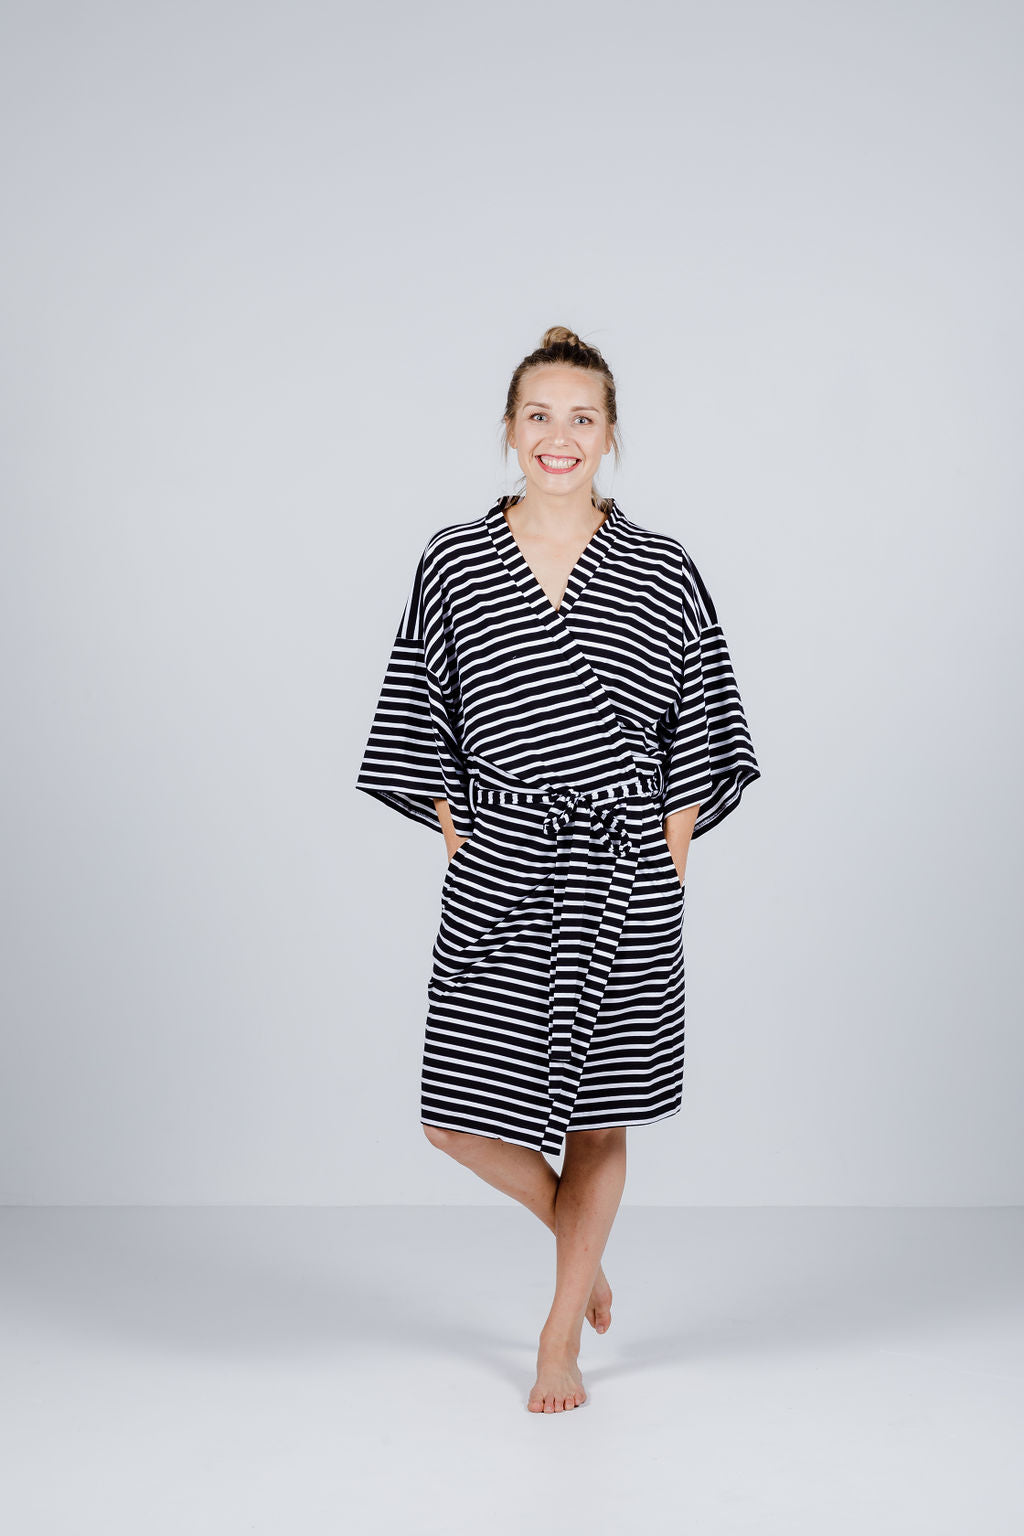 ROBE - Black & White Stripes